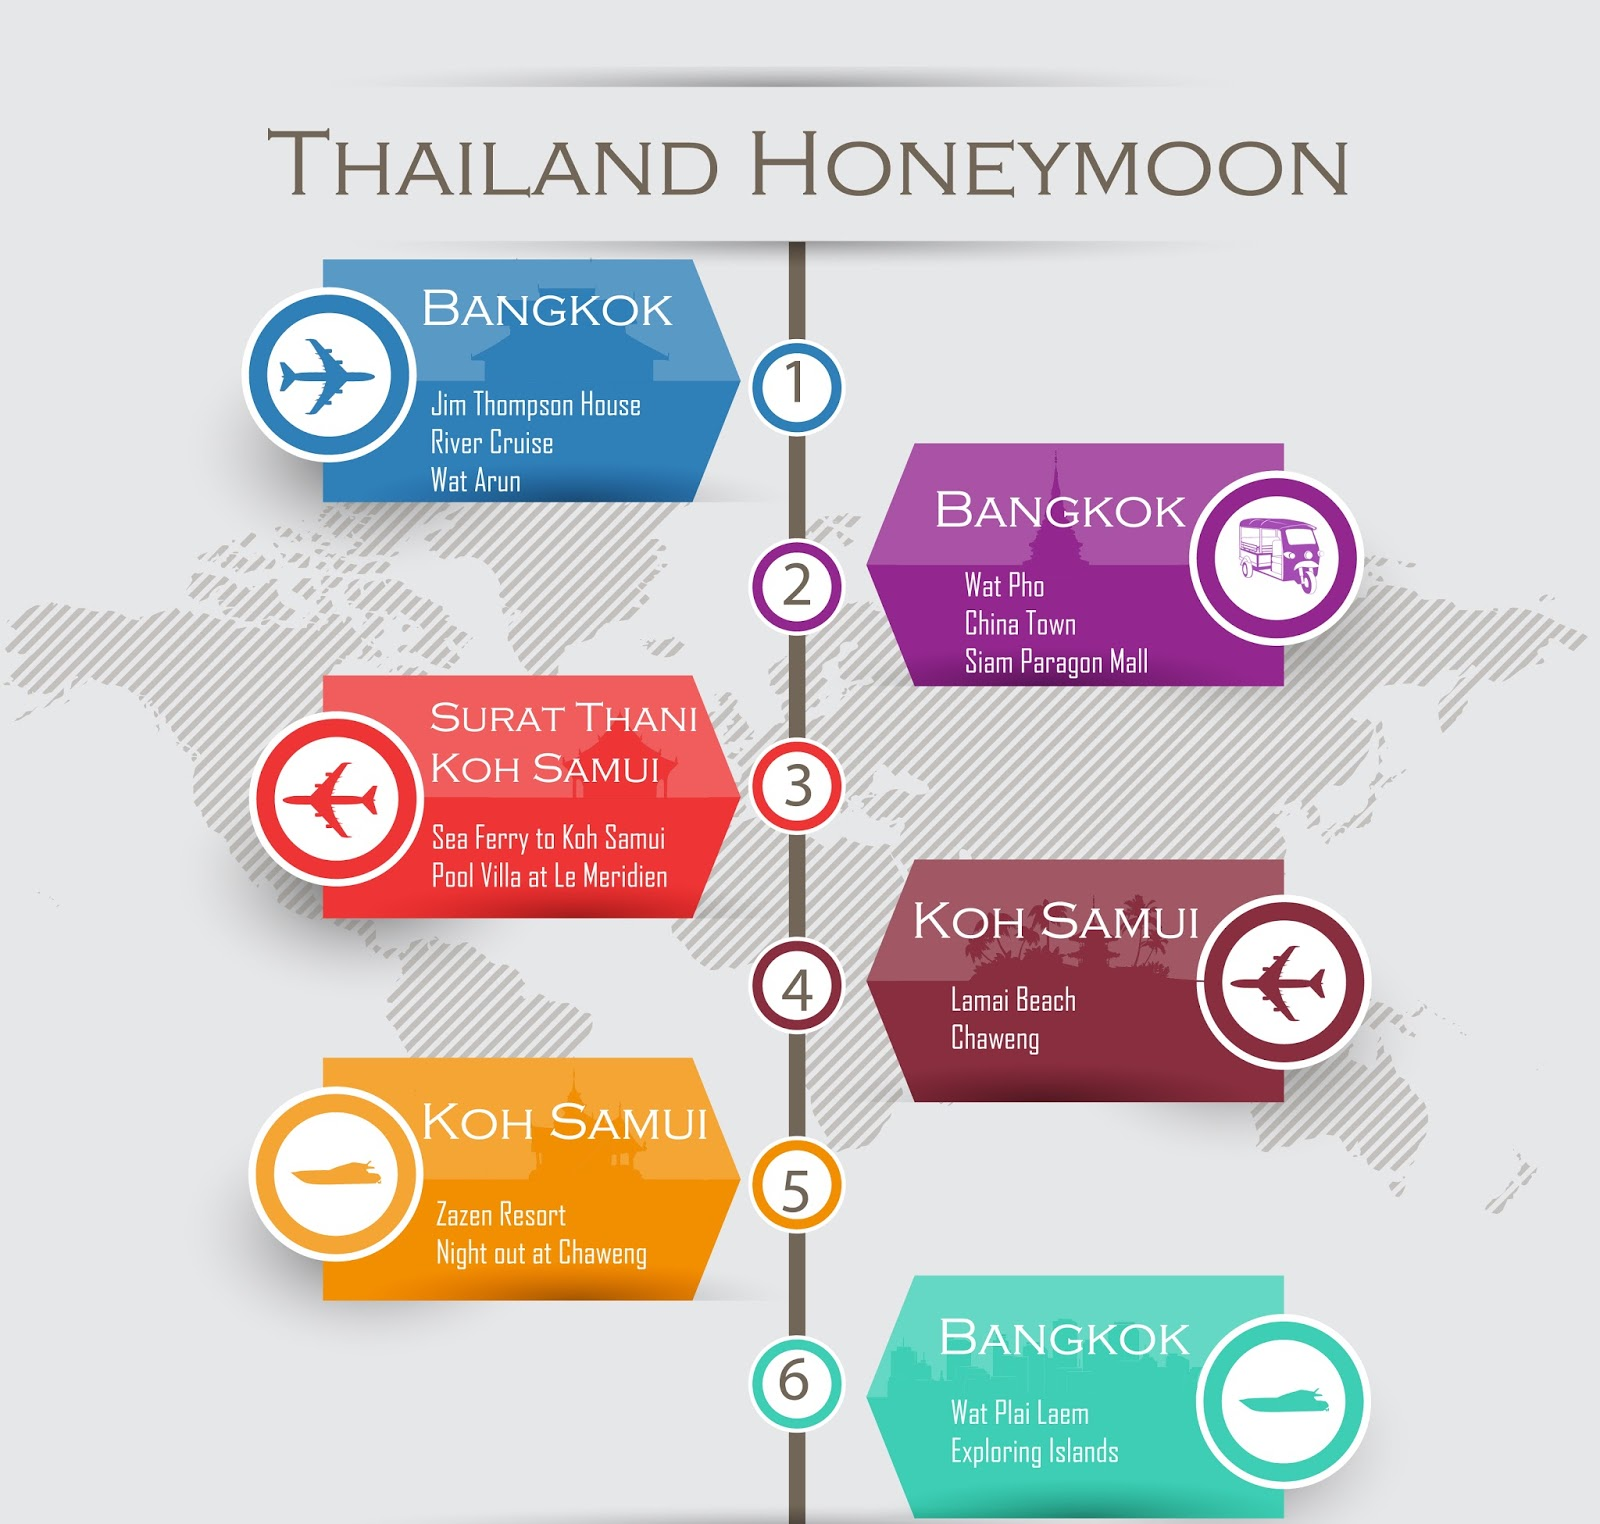 Thailand Honeymoon Itinerary